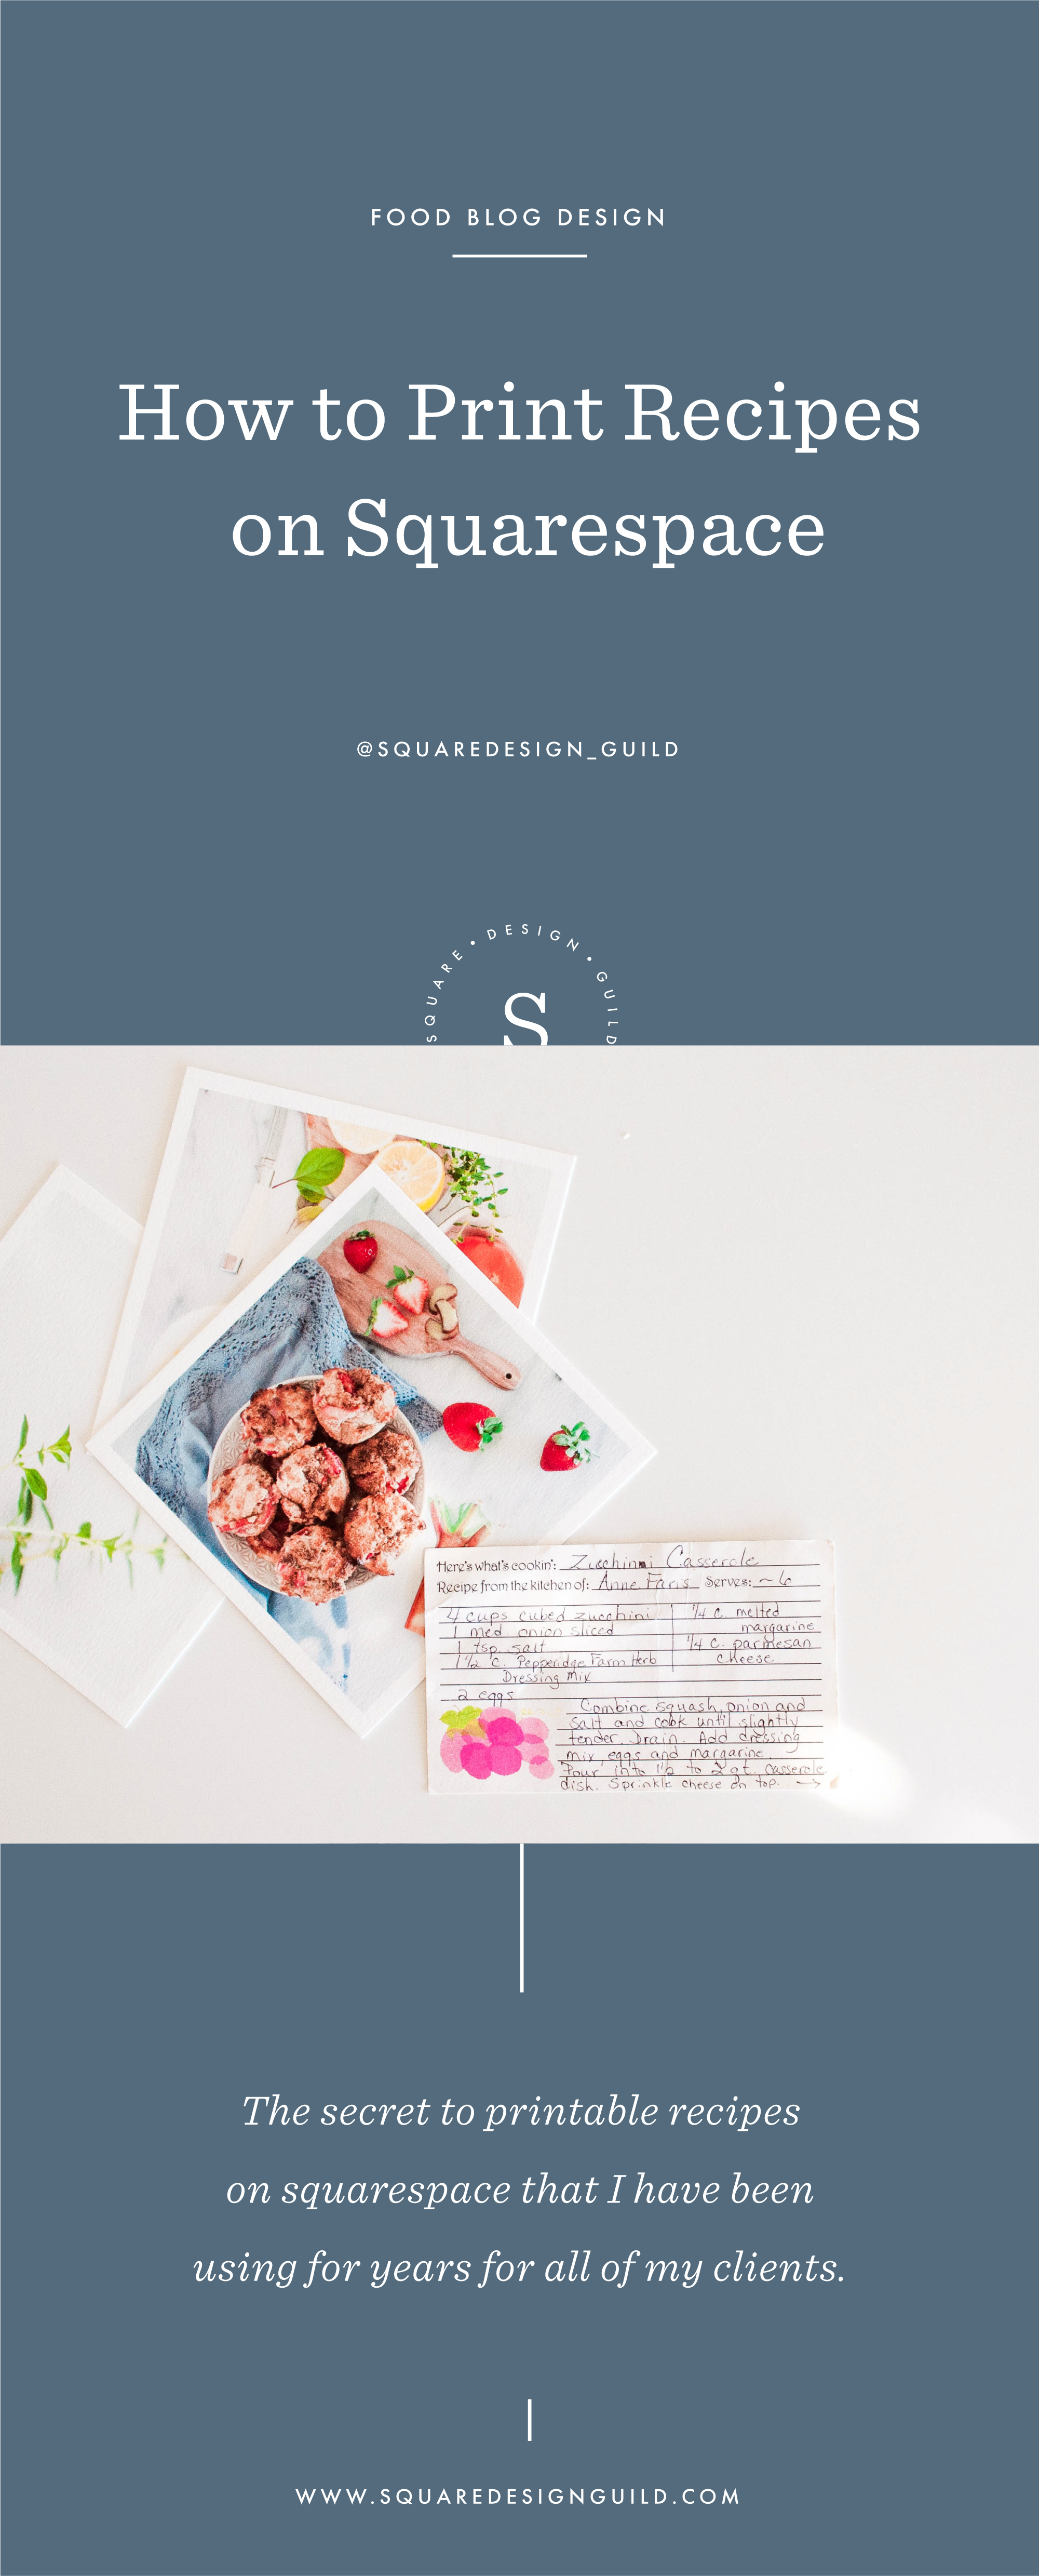 How to Print a Recipe on Squarespace